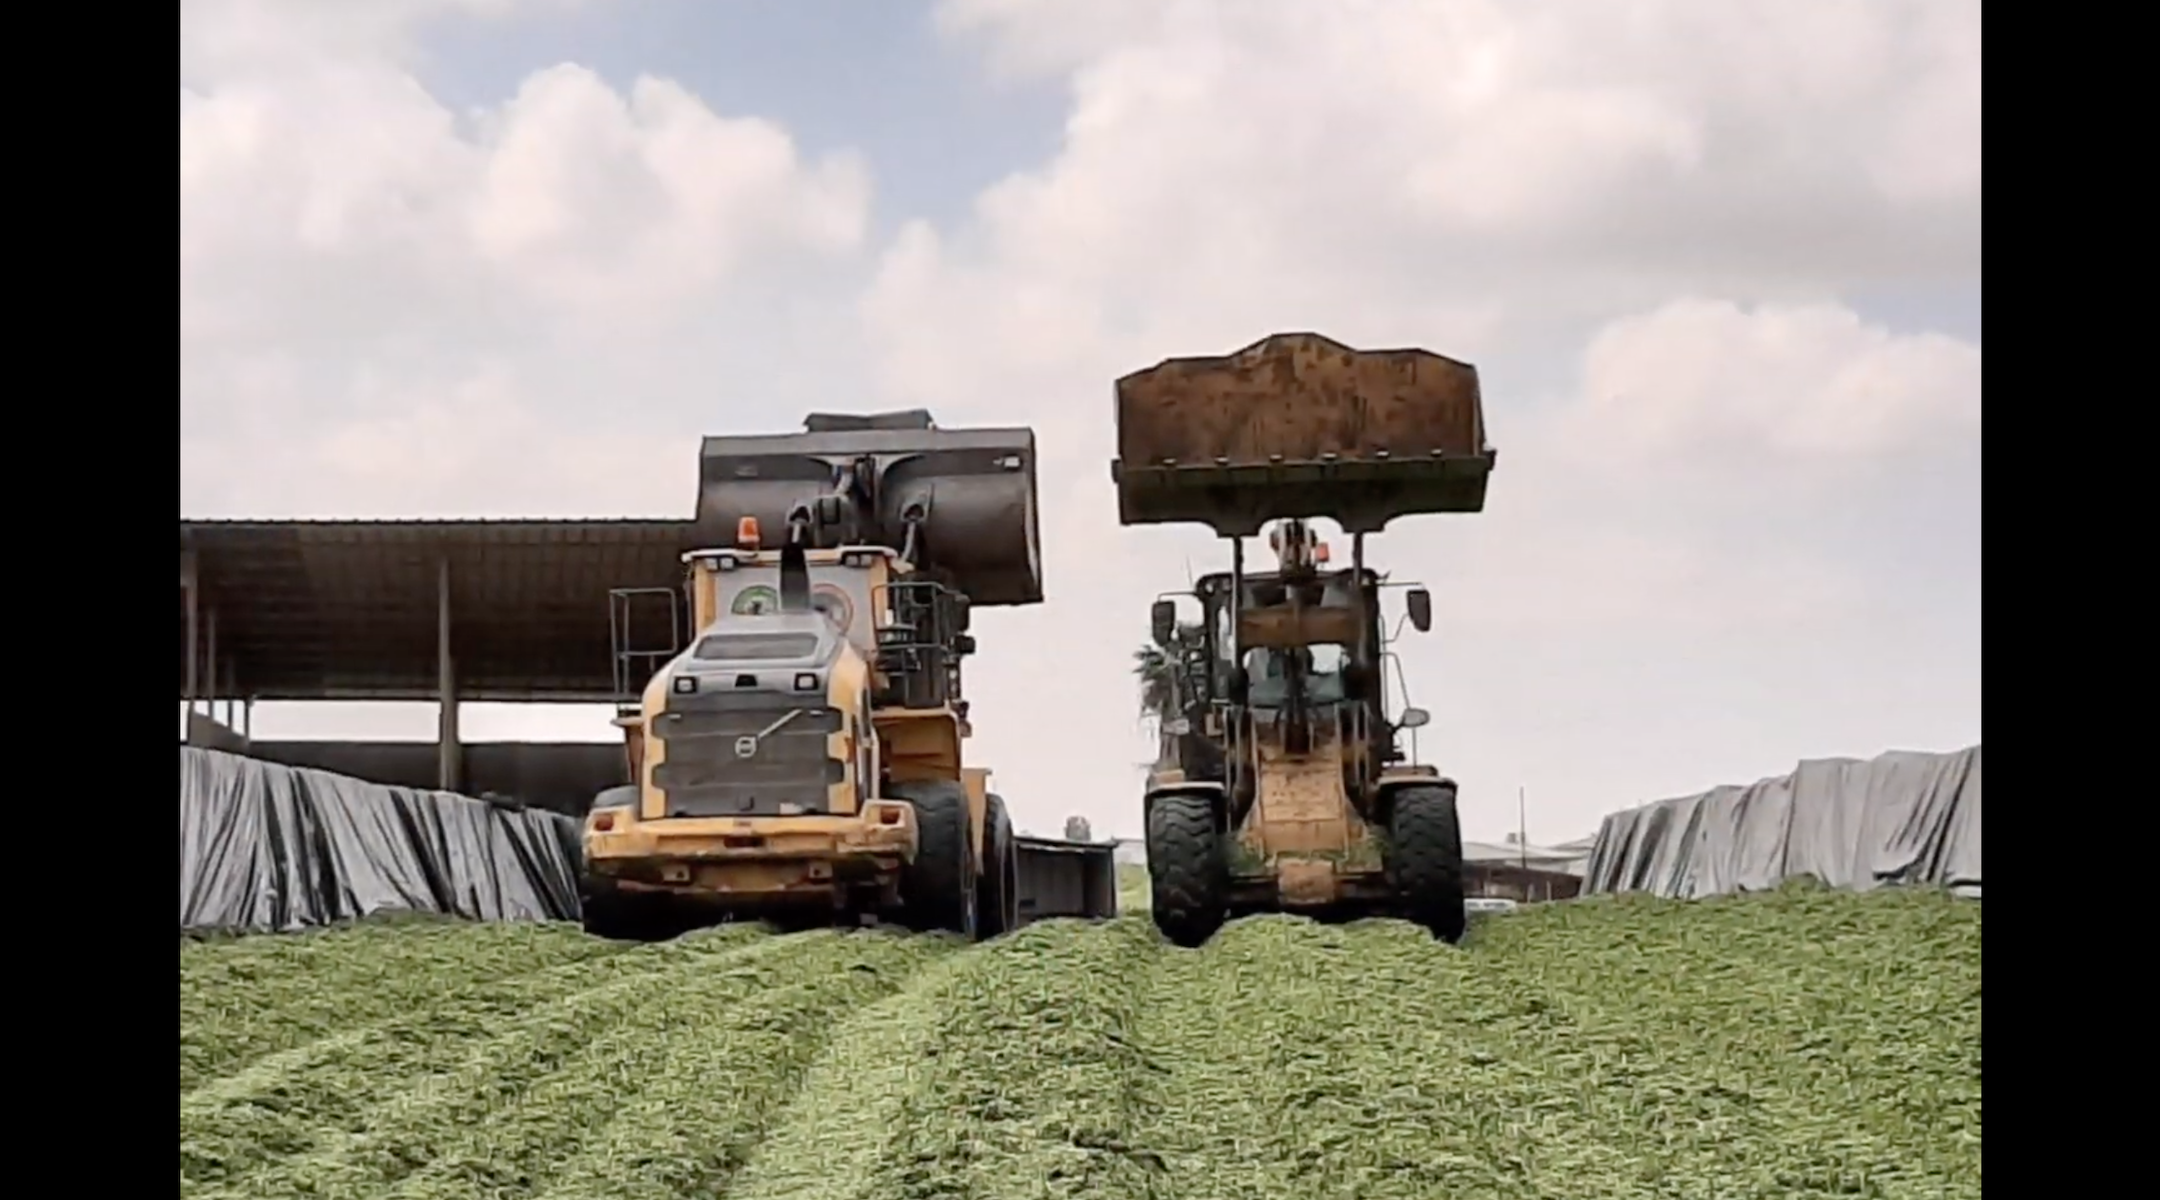 Farm equipment at Ein Hashlosha, a kibbutz on Israel's border with Gaza that has seen a recent influx of young families. (Screen shot from YouTube)